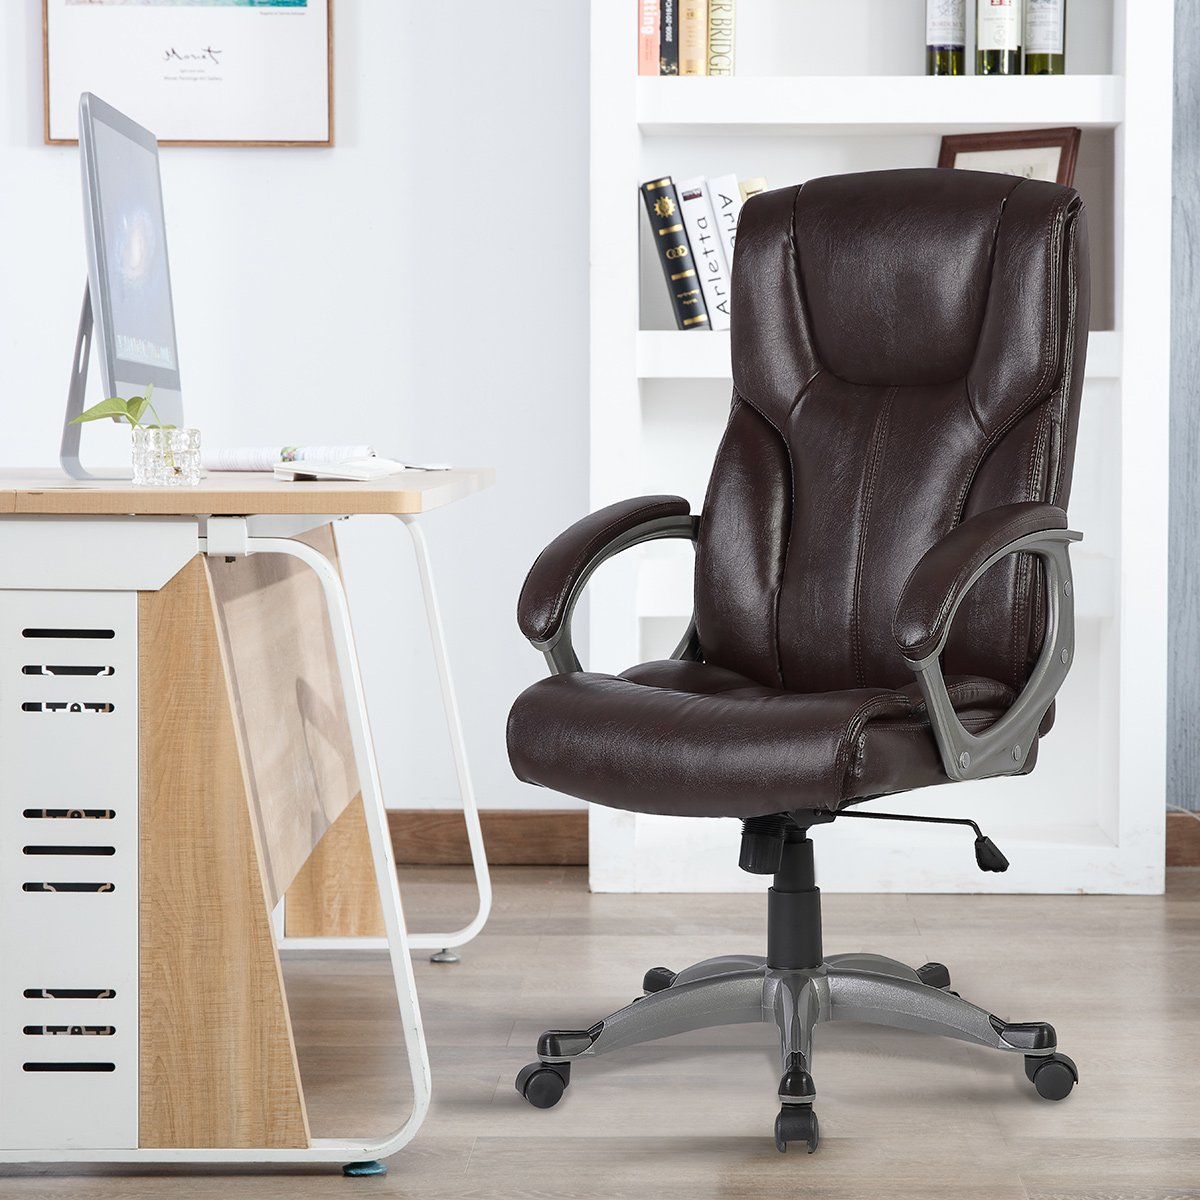 B2C2B Ergonomic Leather Swivel Executive Chair Home Office Computer Task Chair Adjustable Desk Chair (red-Brown)